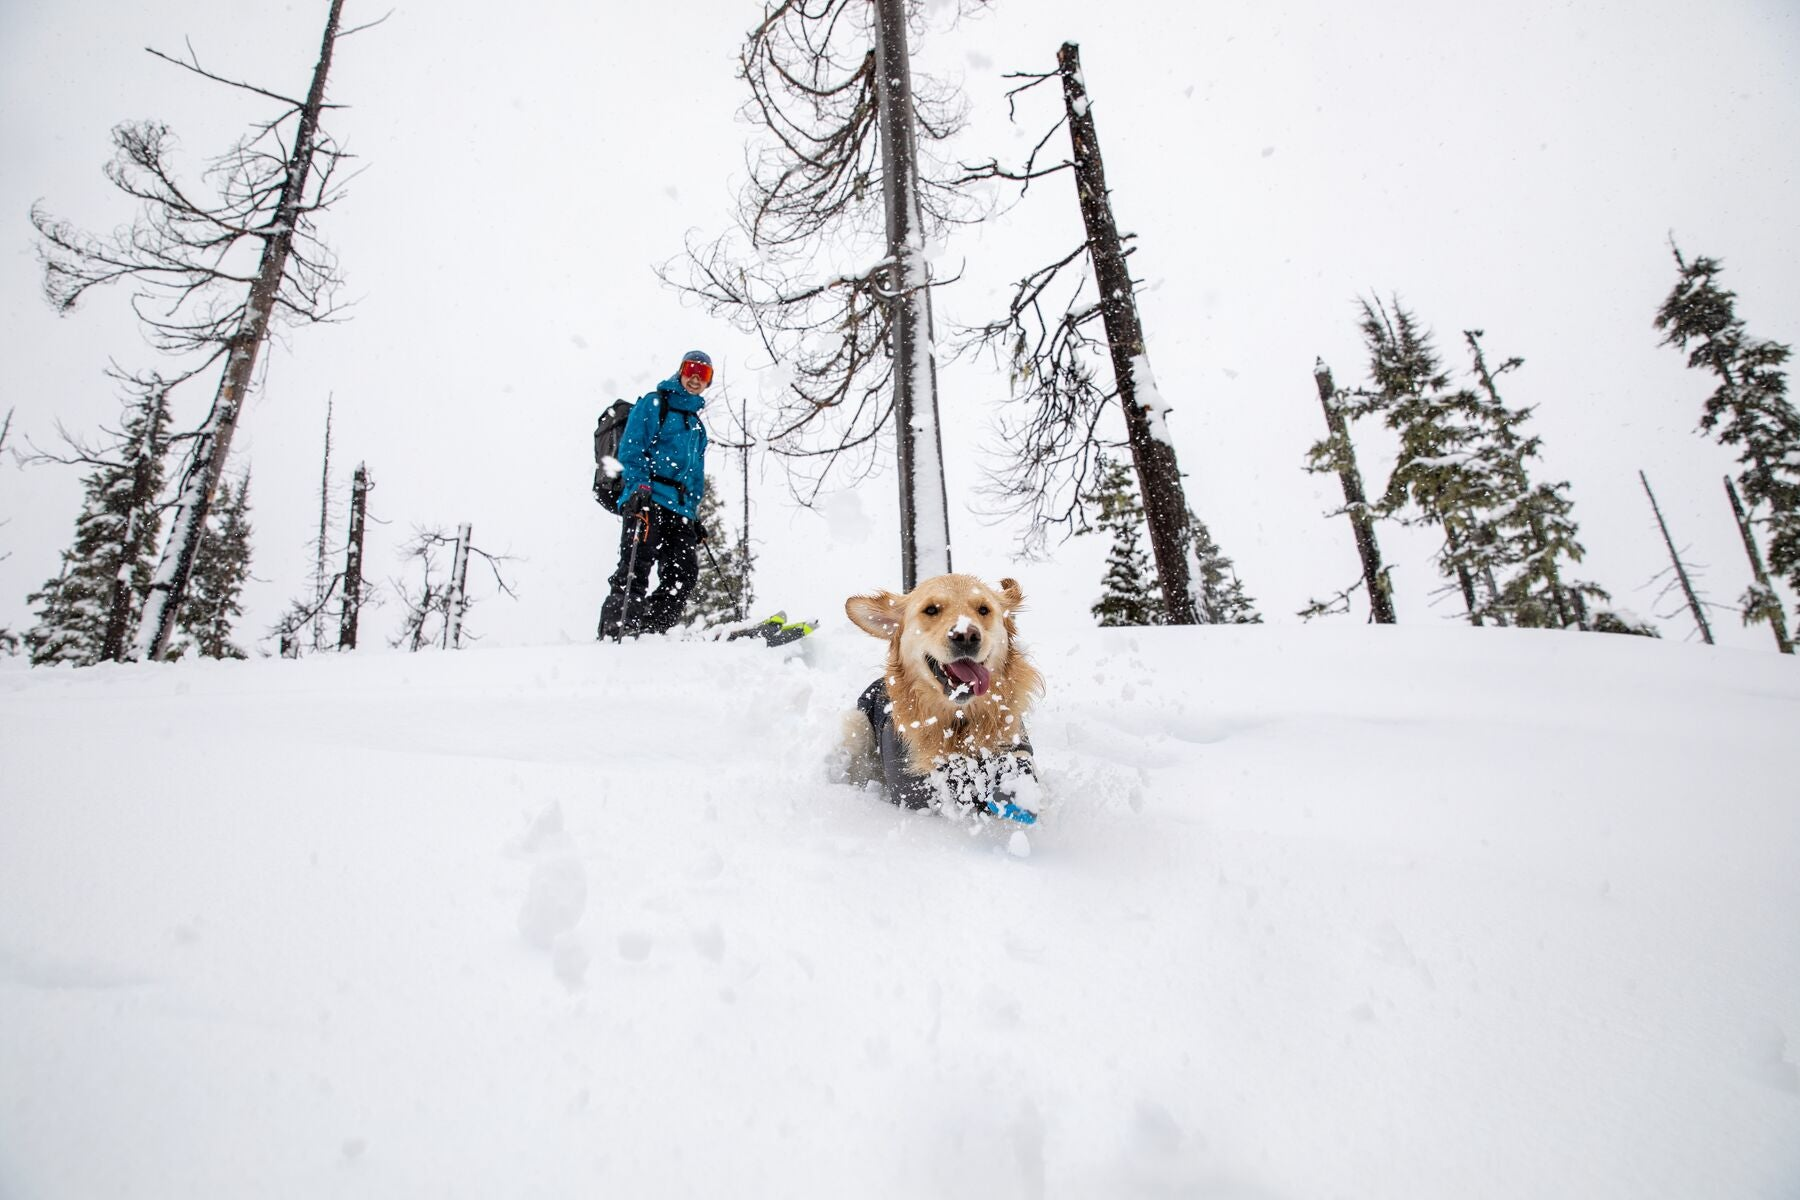 Millie in polar trex boots charges downhill in deep snow.